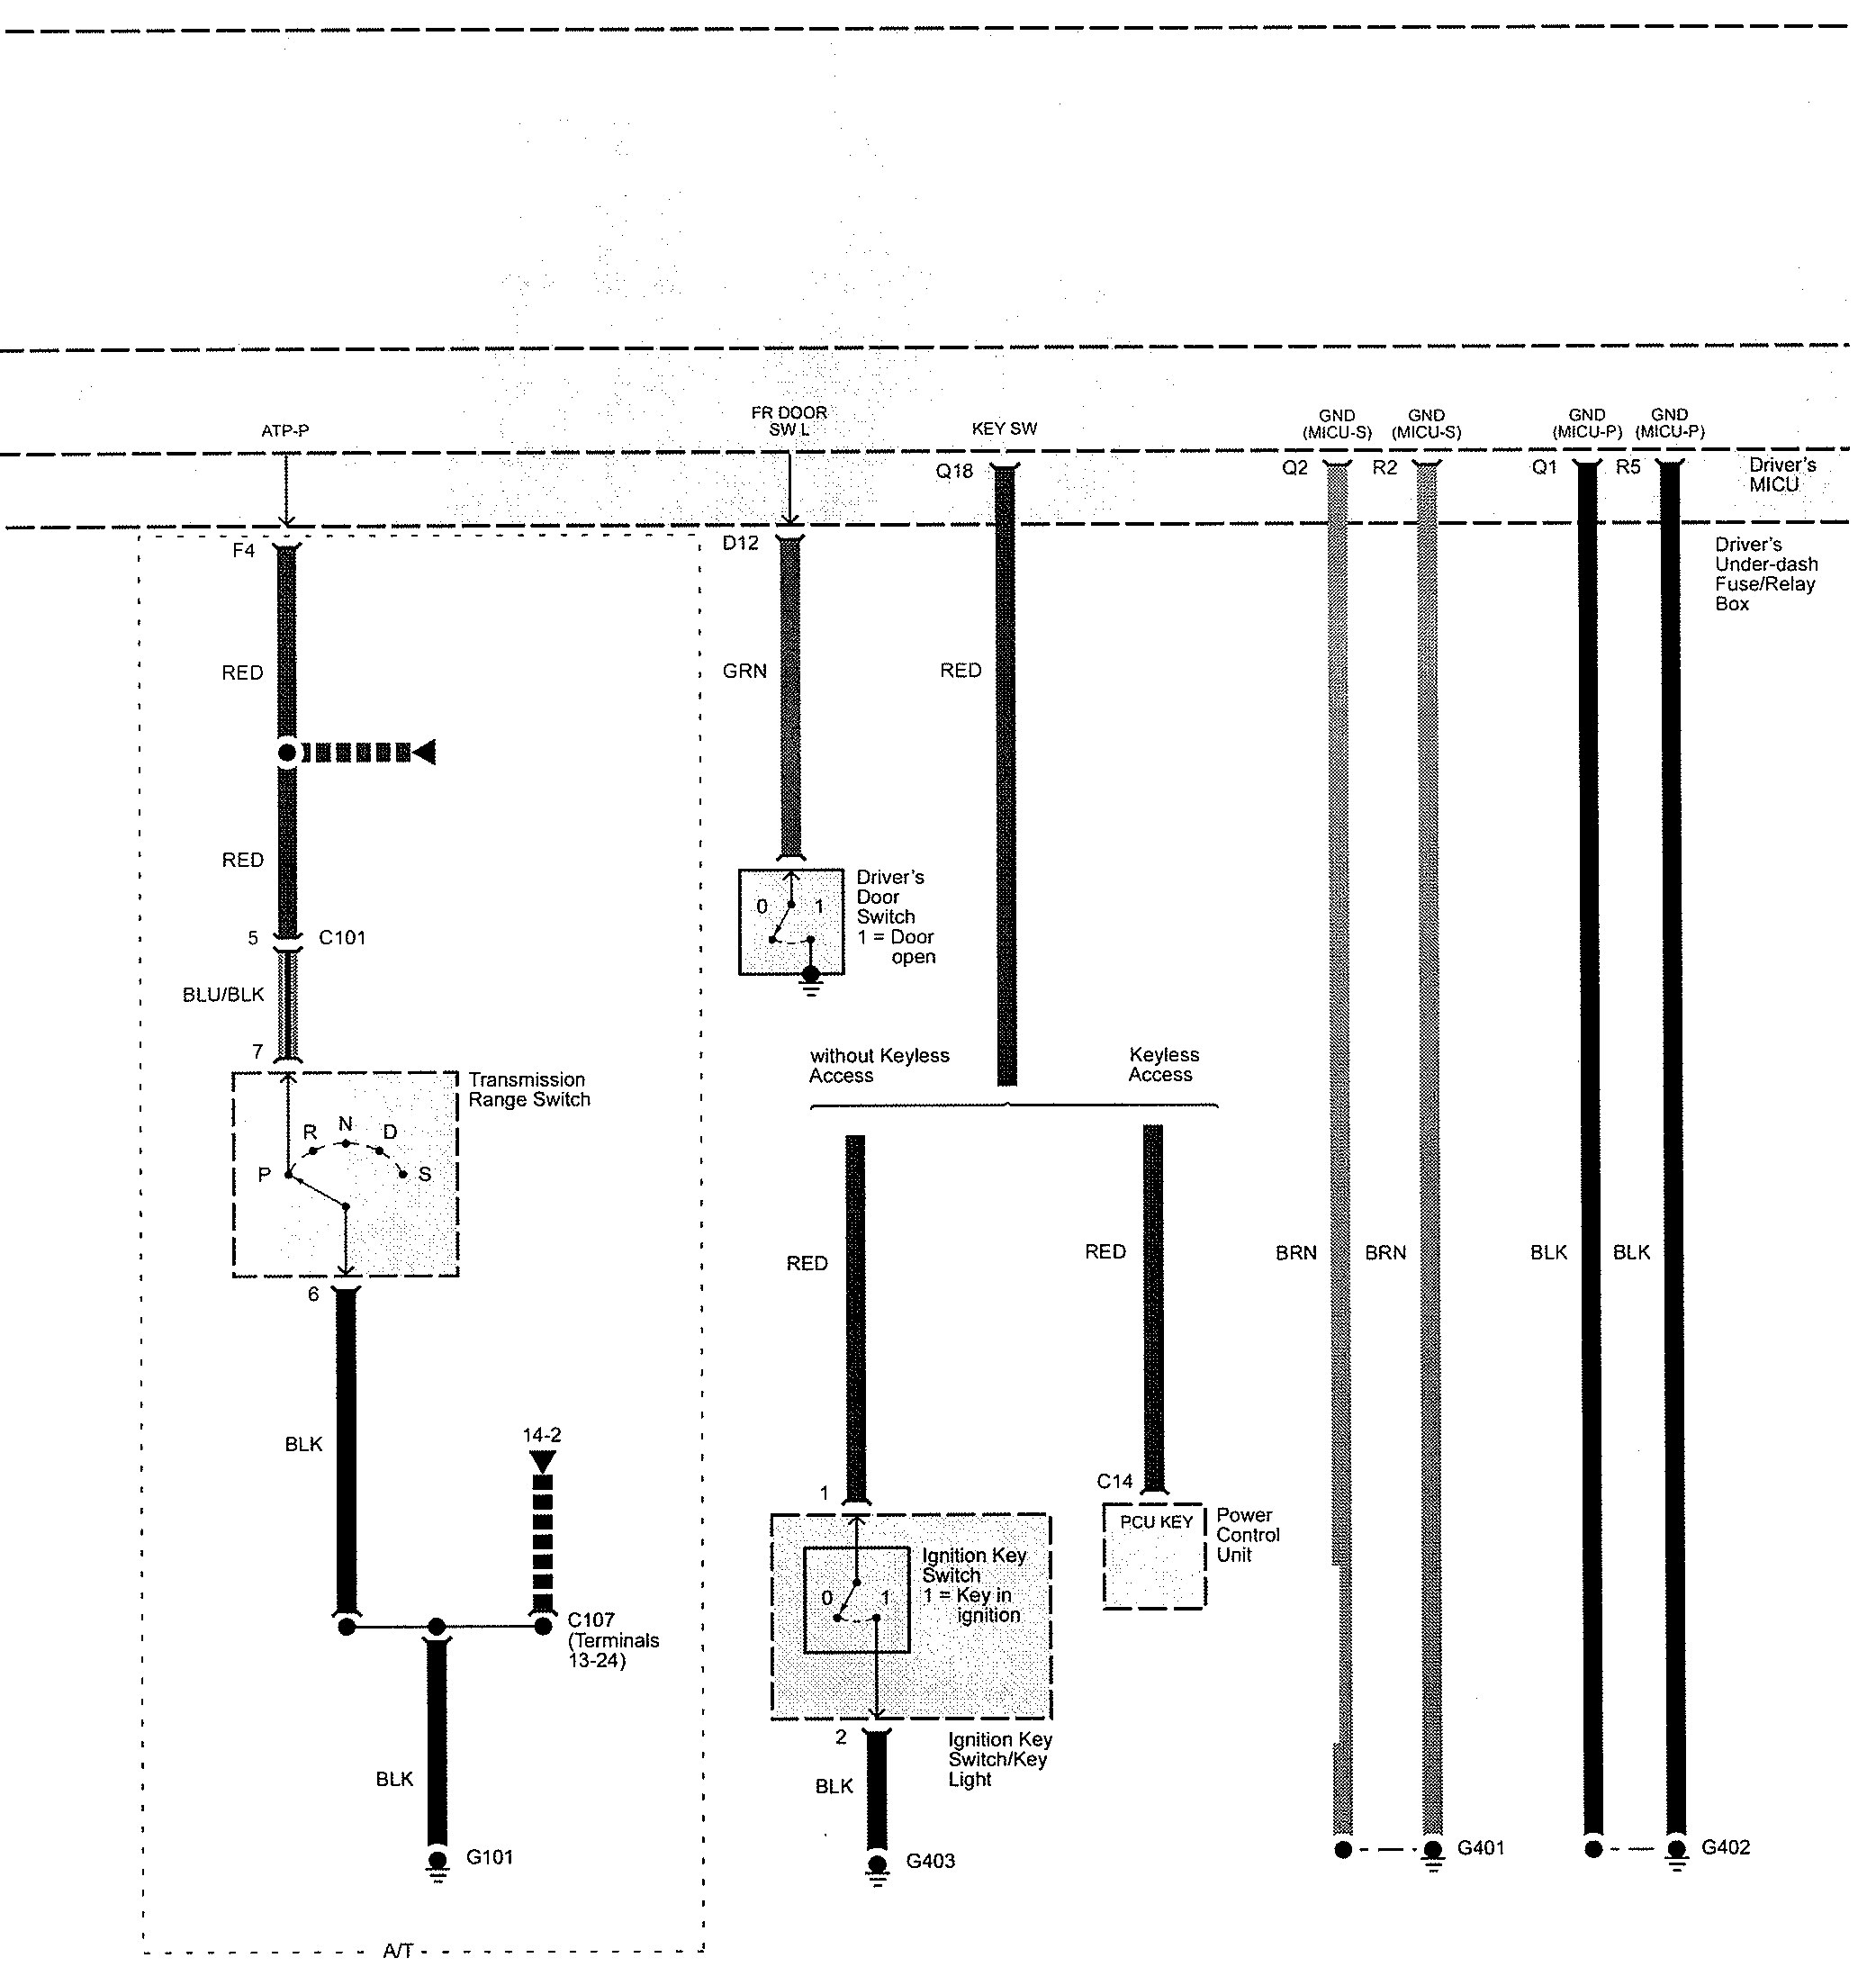 Outstanding Saab 9000 Radio Wiring Diagram Contemporary - Best Image ...